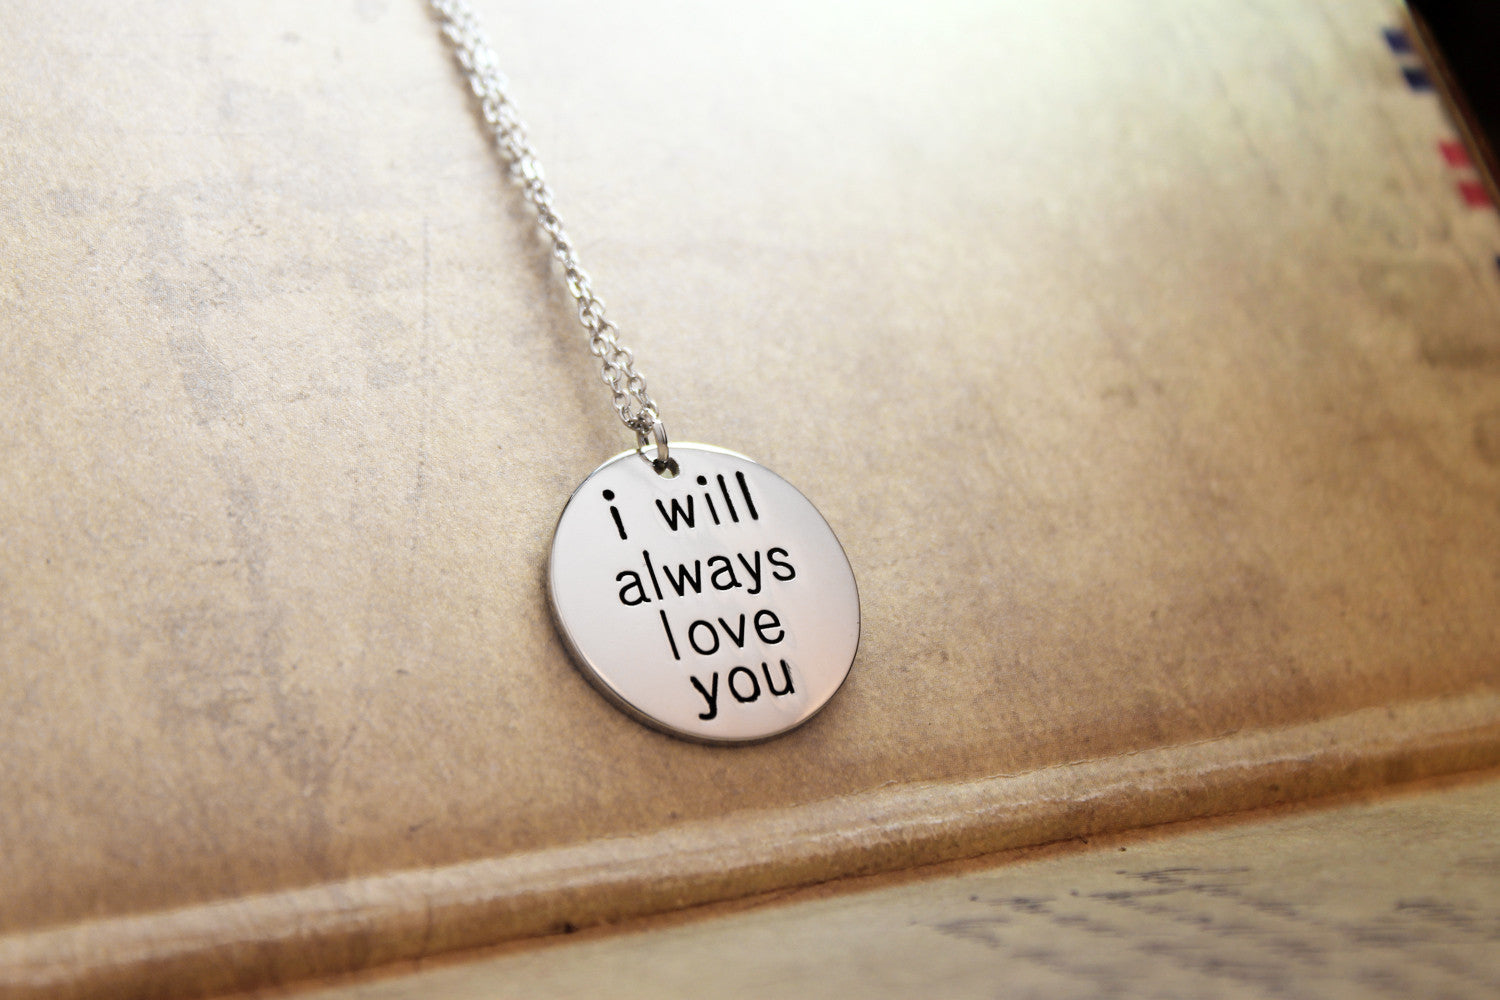 I Will Always Love You - Florence Scovel - 2